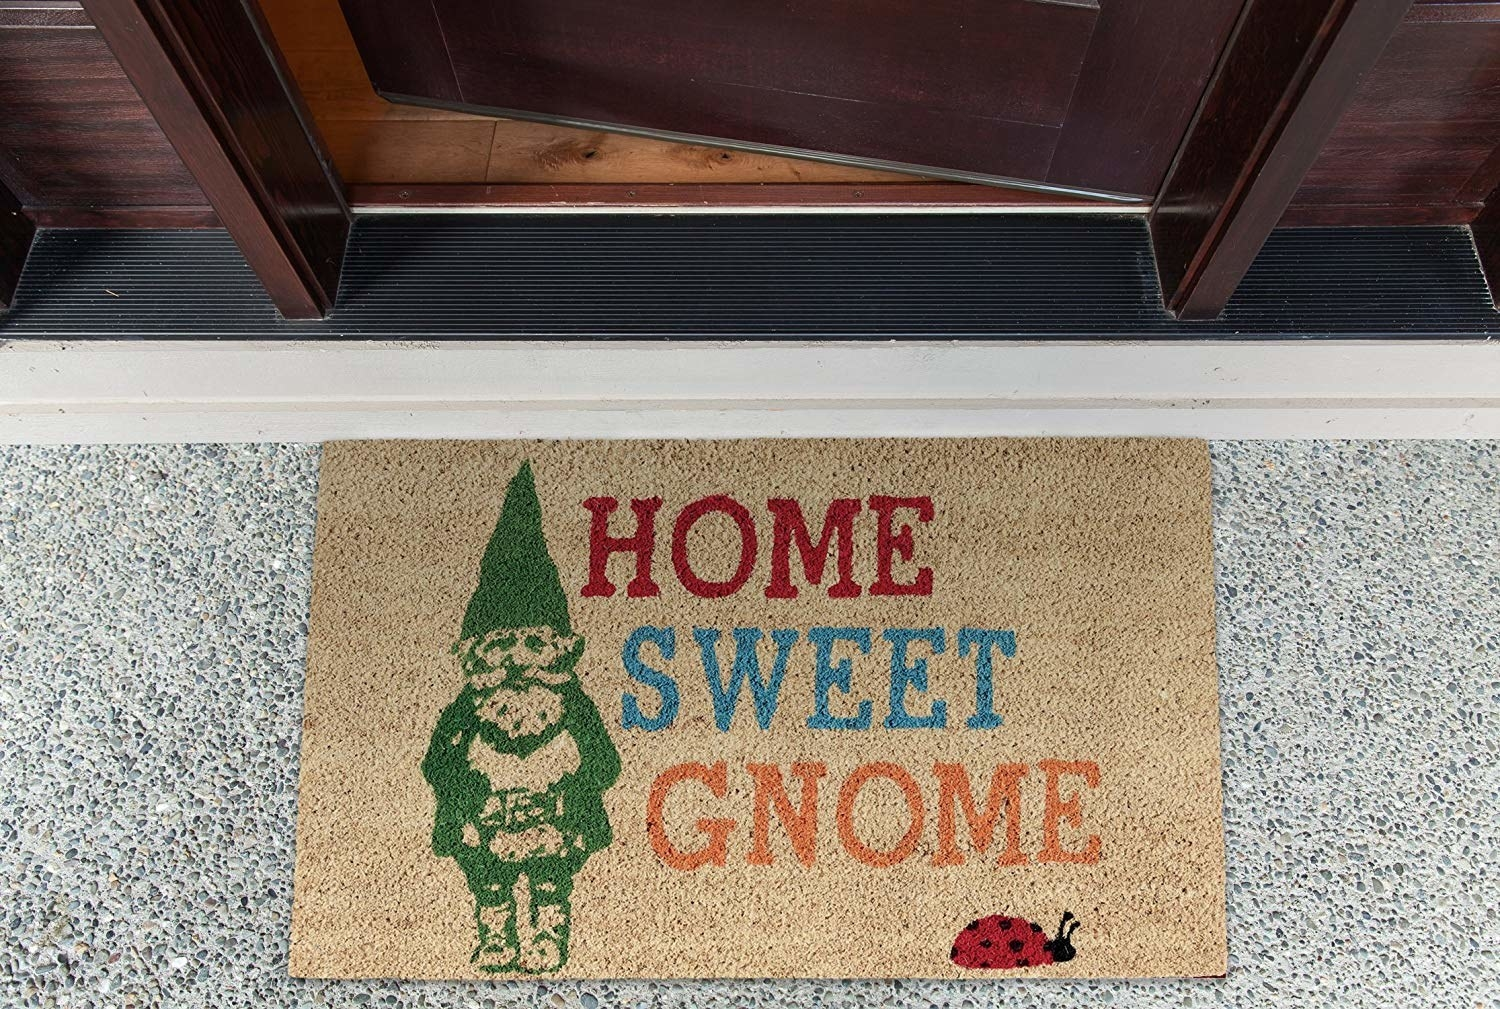 a welcome mat that says home sweet gnome and has a gnome and ladybug